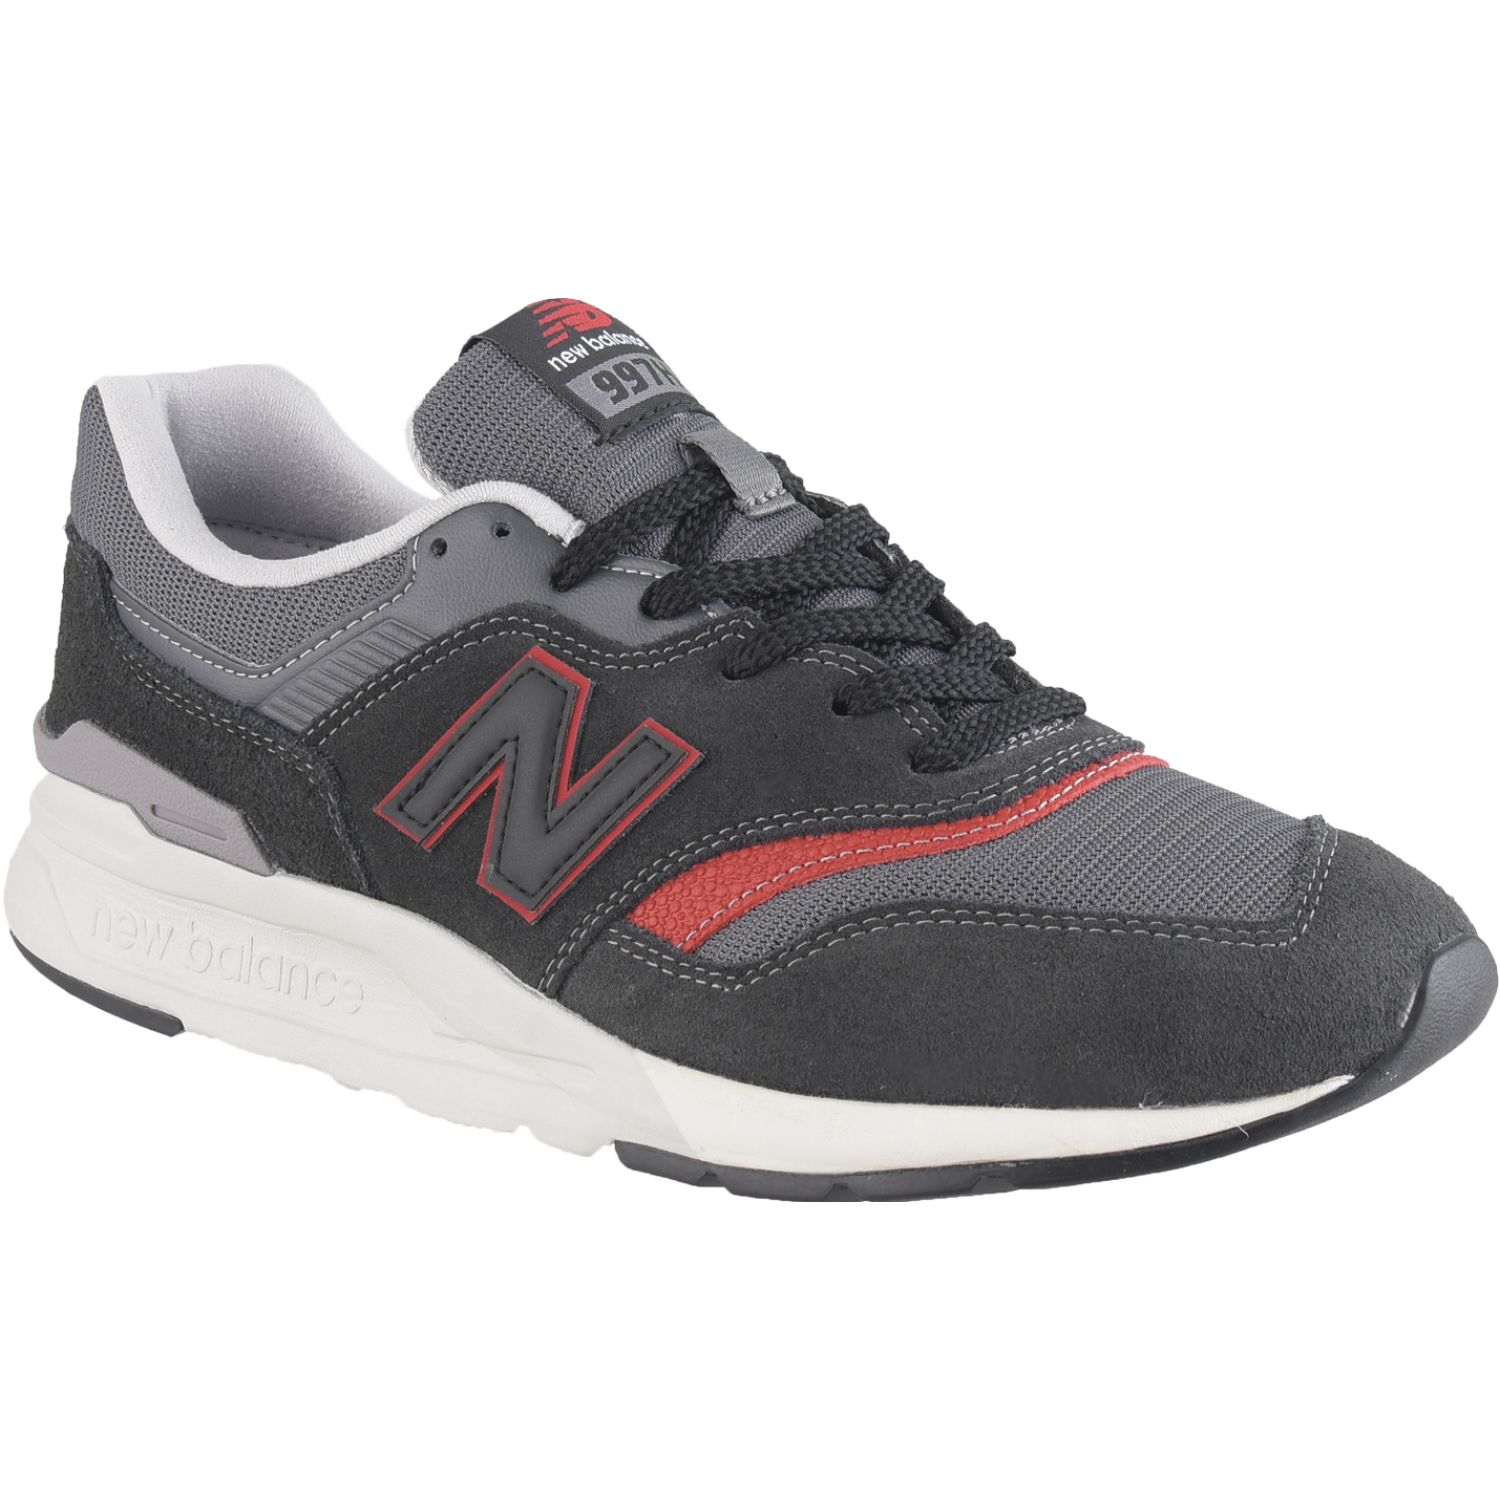 New Balance 997 Negro / rojo Walking